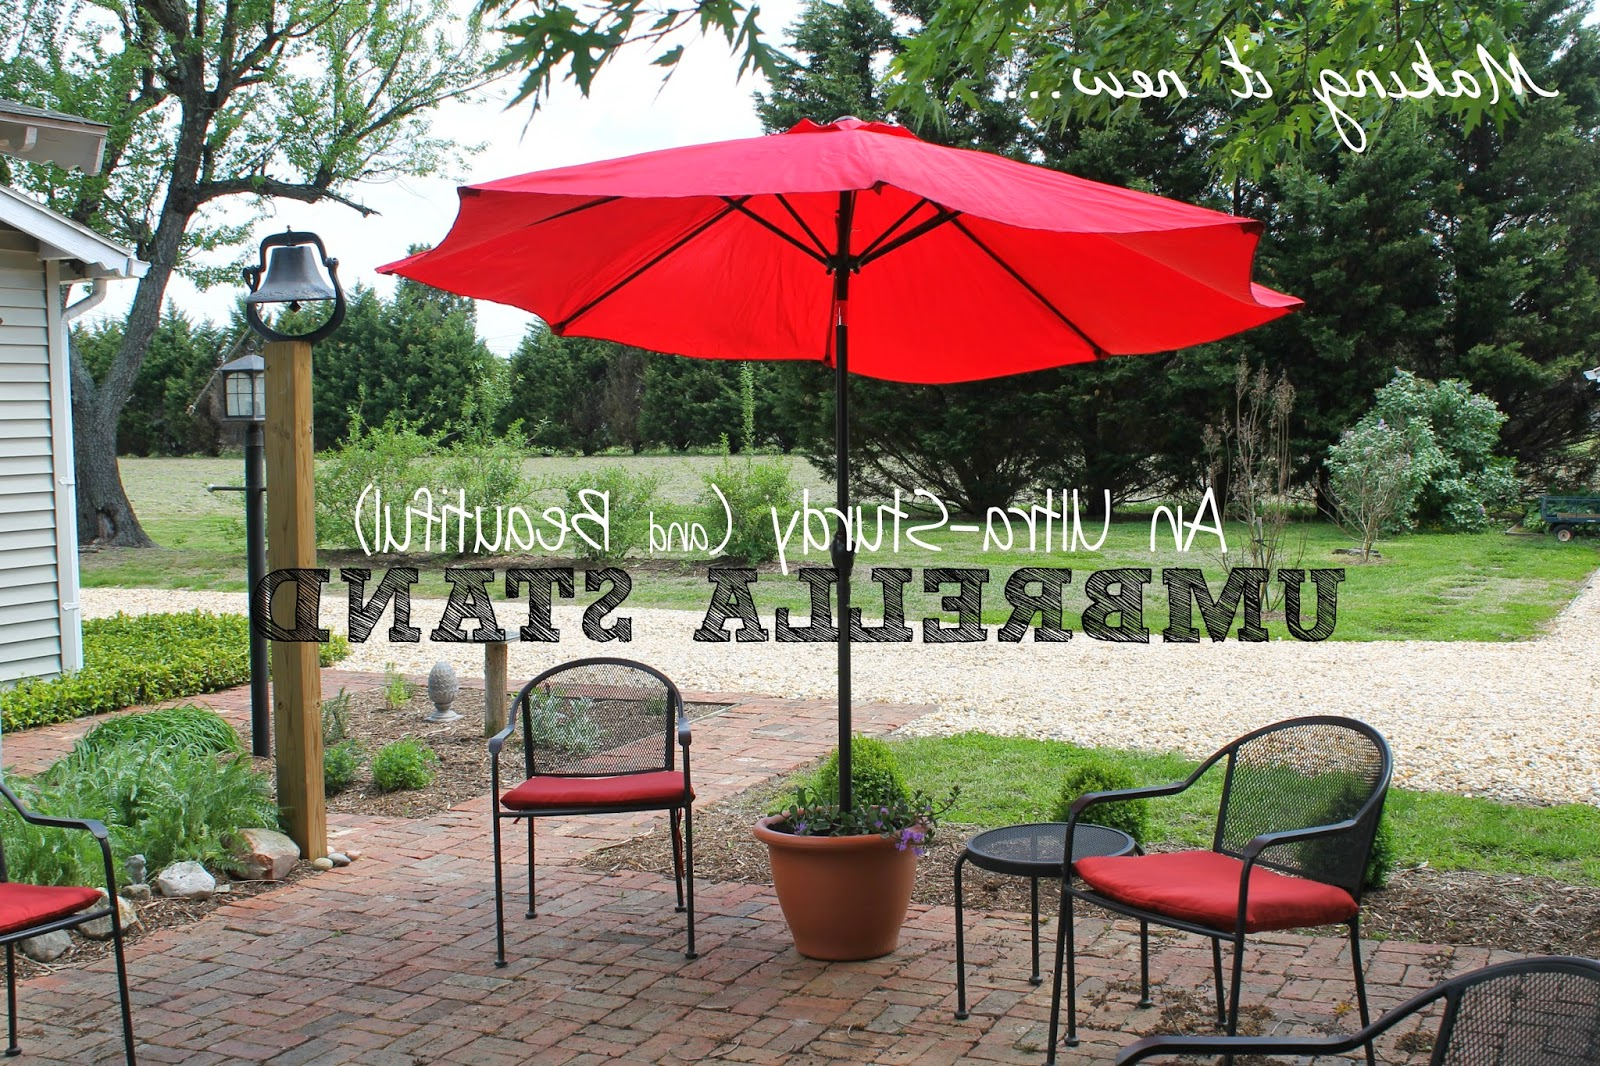 Judah Cantilever Umbrellas Within Well Liked Thinking About Home: Making It New {Ultra Sturdy Umbrella Stand} (View 12 of 20)